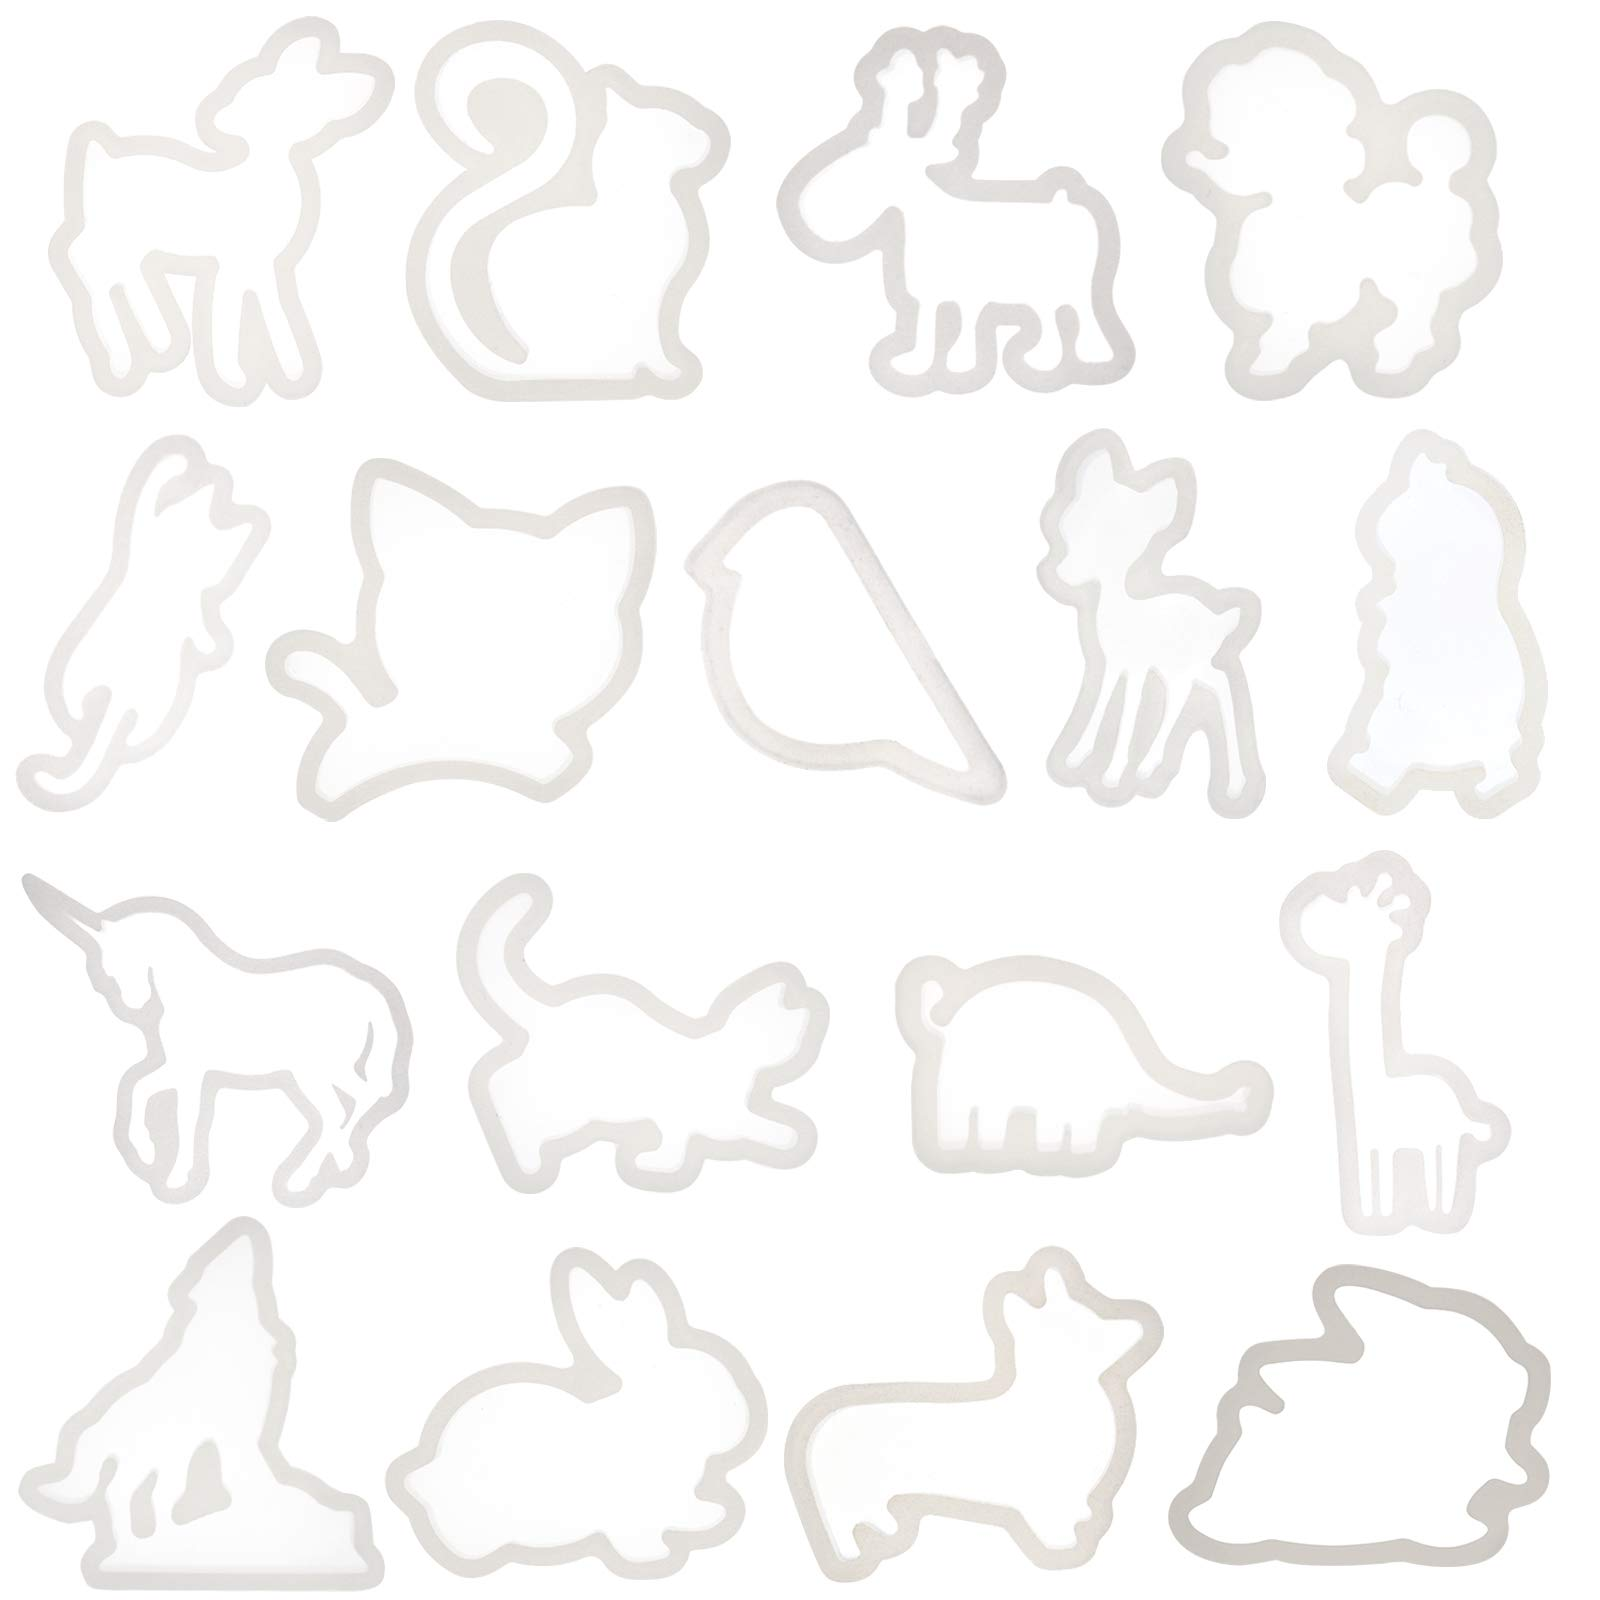 Funshowcase Cute Animals Silicone Mold Trays for Crafting, Resin Epoxy, Jewelry Making 17 in Set Bundle